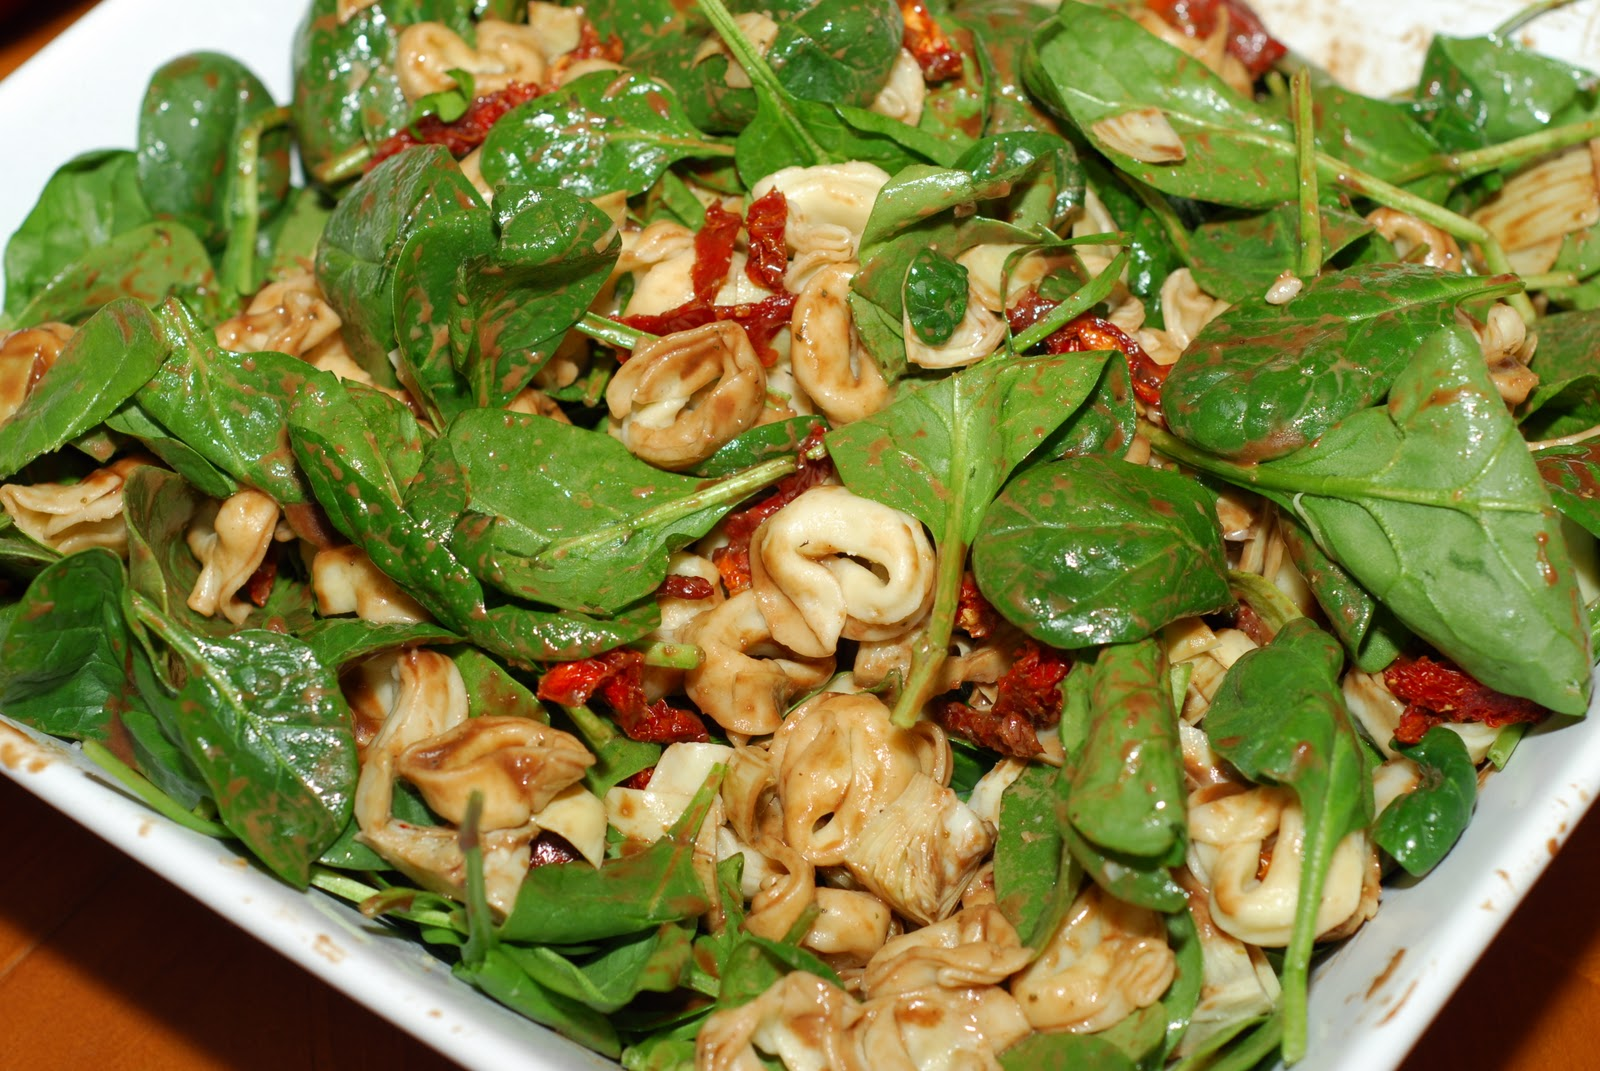 Bites: Tortellini Spinach Salad with Balsamic Tomato Vinaigrette